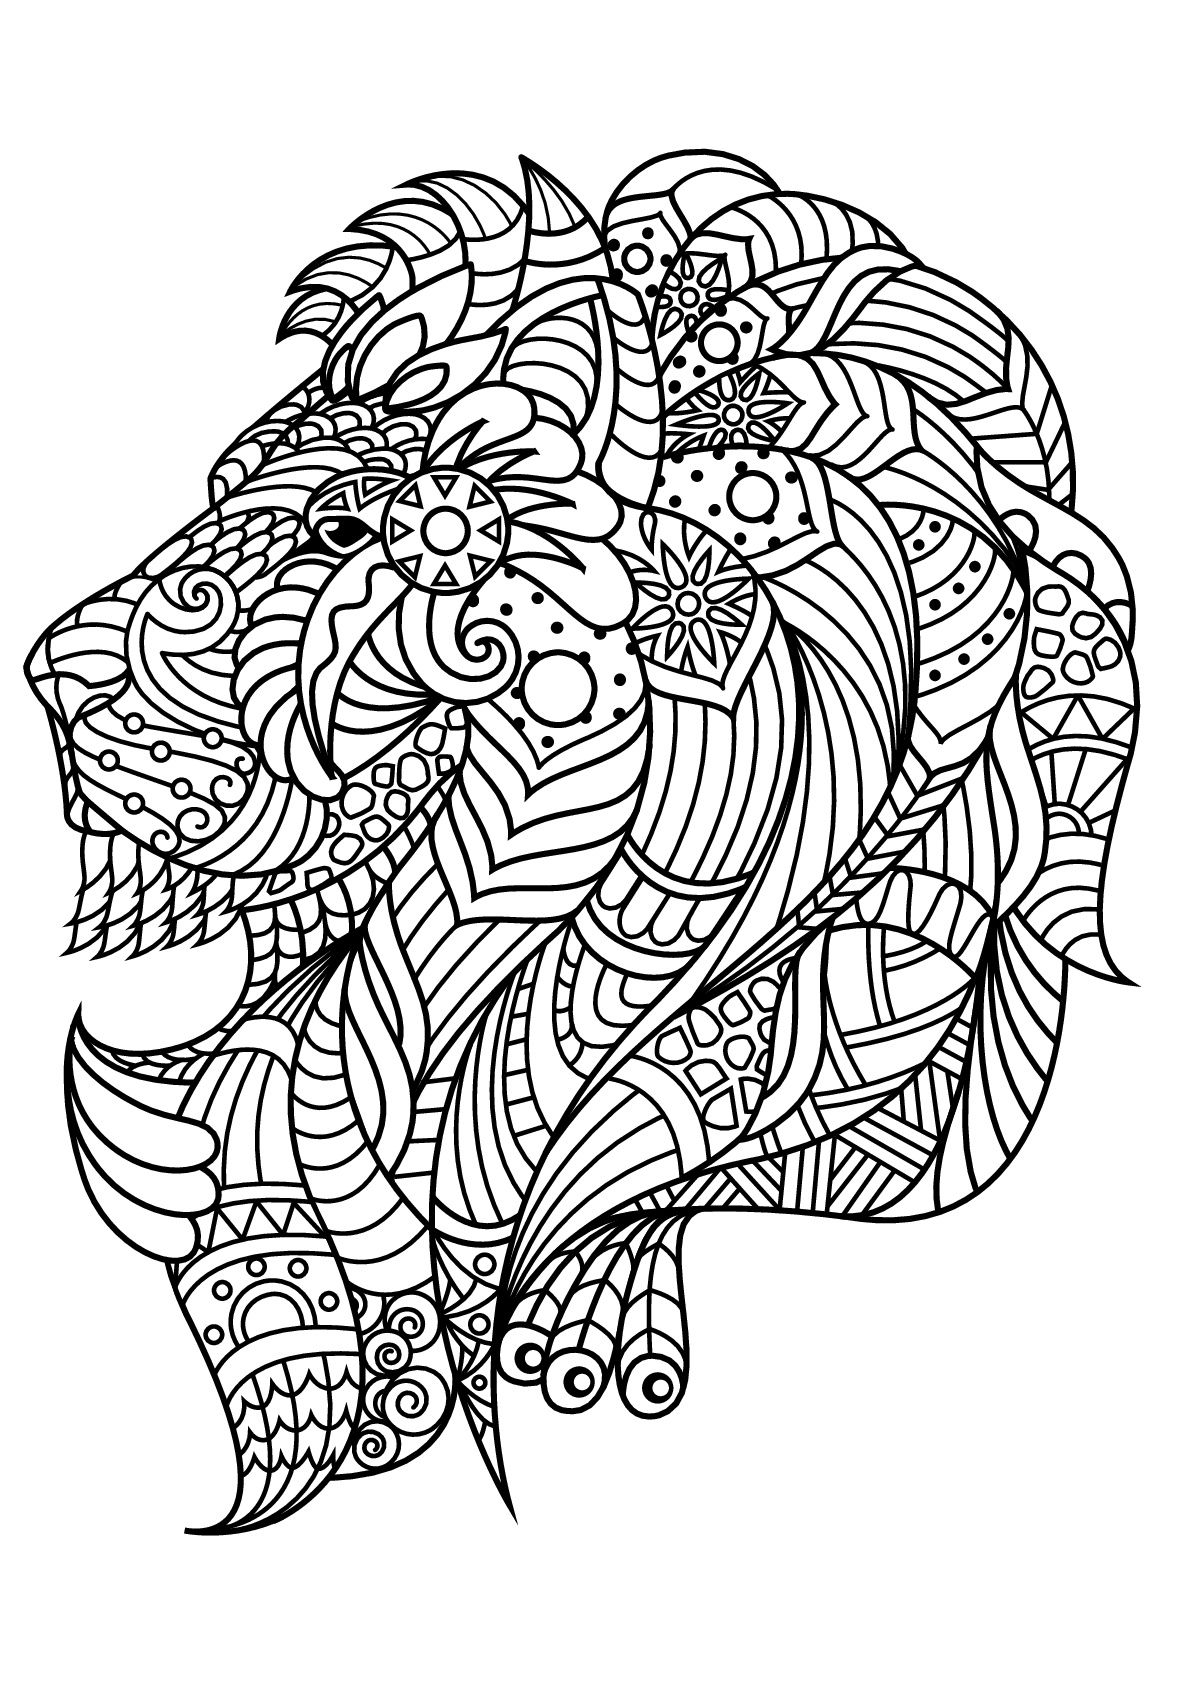 colouring pictures of lions lovely cartoon lion coloring page free printable pictures colouring lions of